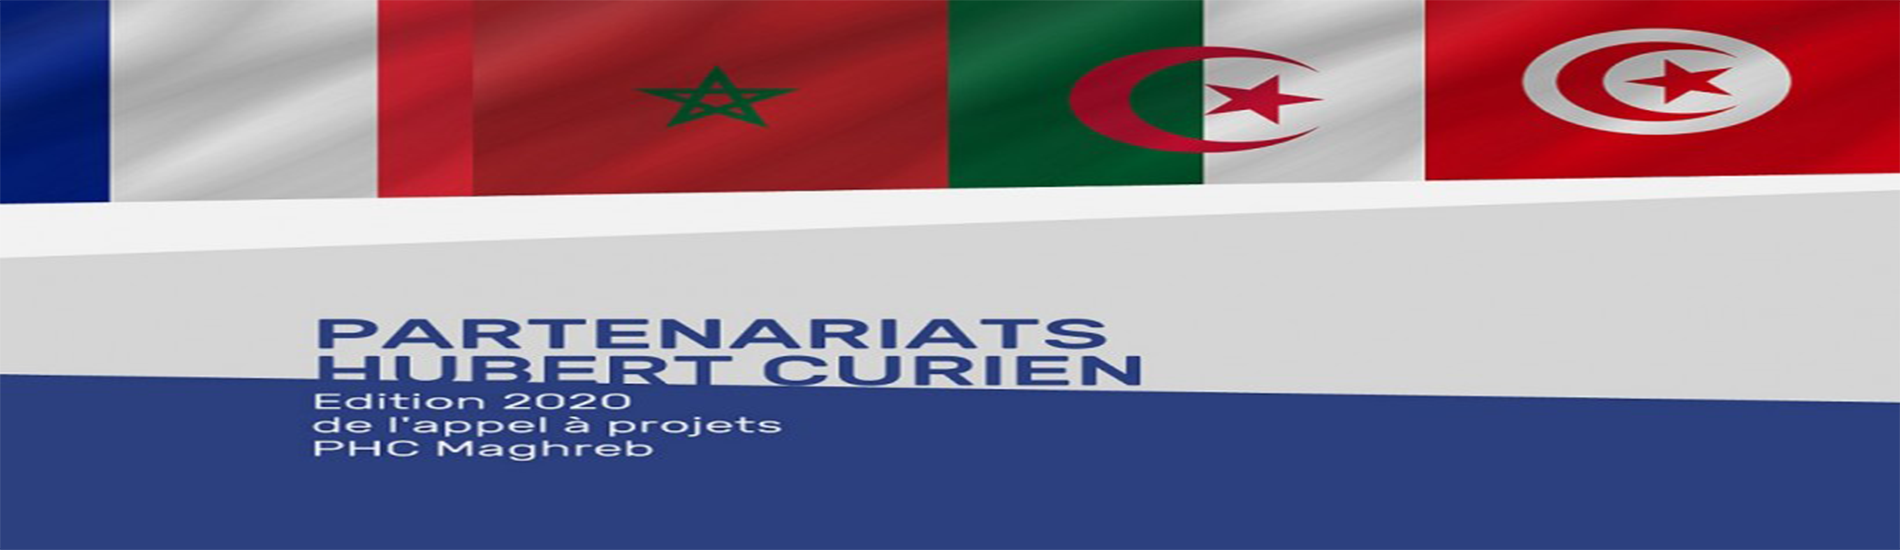 Programme TASSILI 2020 Programme PHC-Maghreb 2020